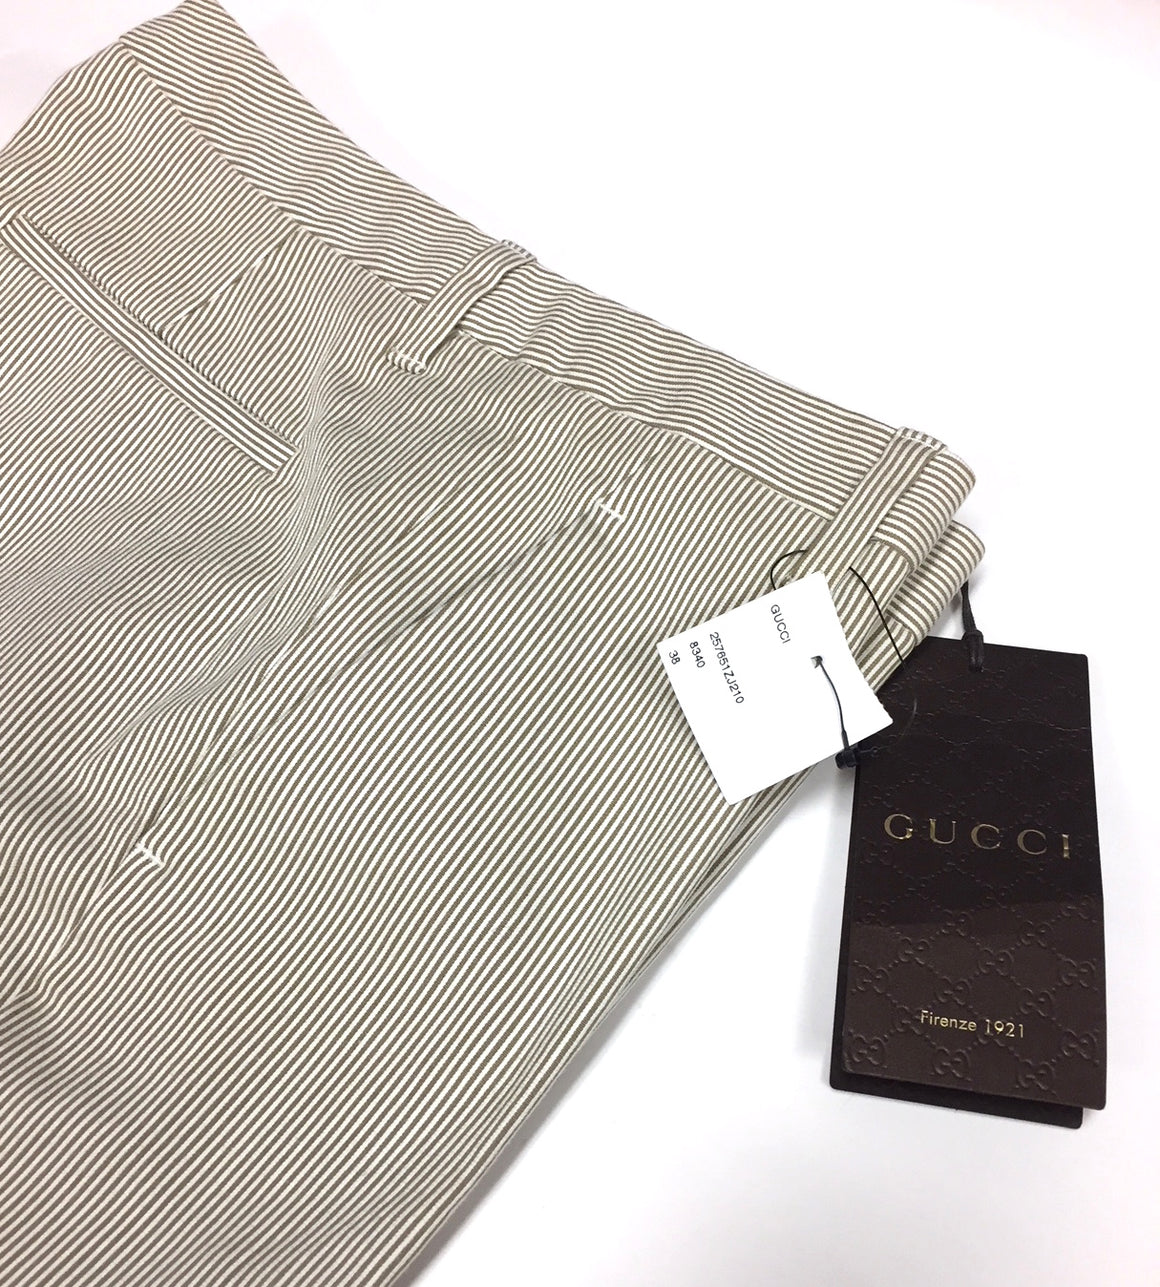 bisbiz.com GUCCI Kakhi/White Striped Cotton-Blend Slim-Leg Pants Size: IT 40/ US6 - Bis Luxury Resale